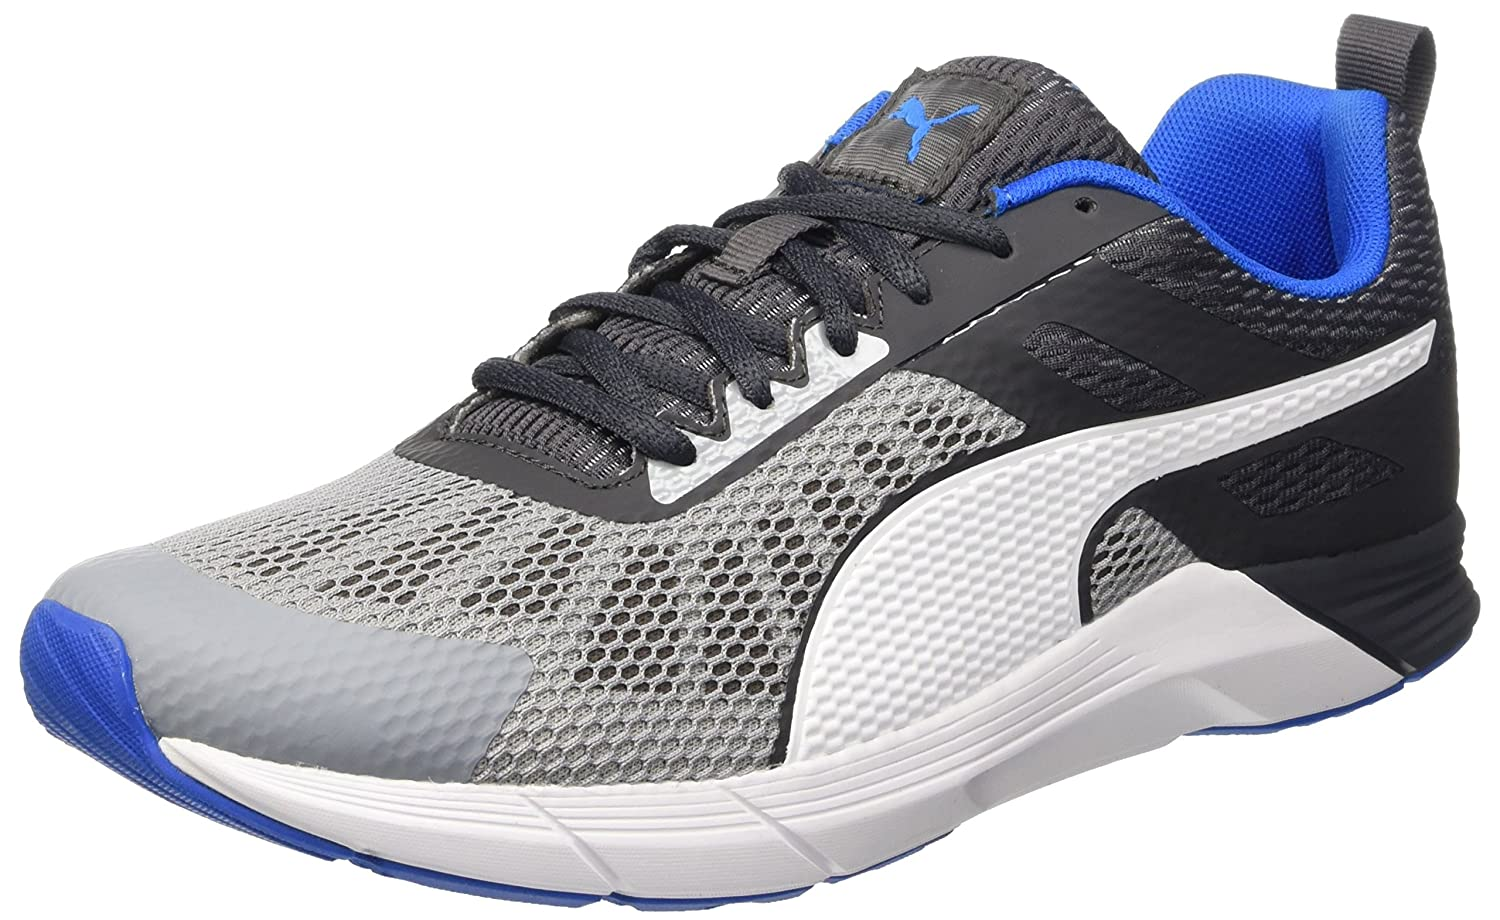 Puma Men's Propel Running Shoes